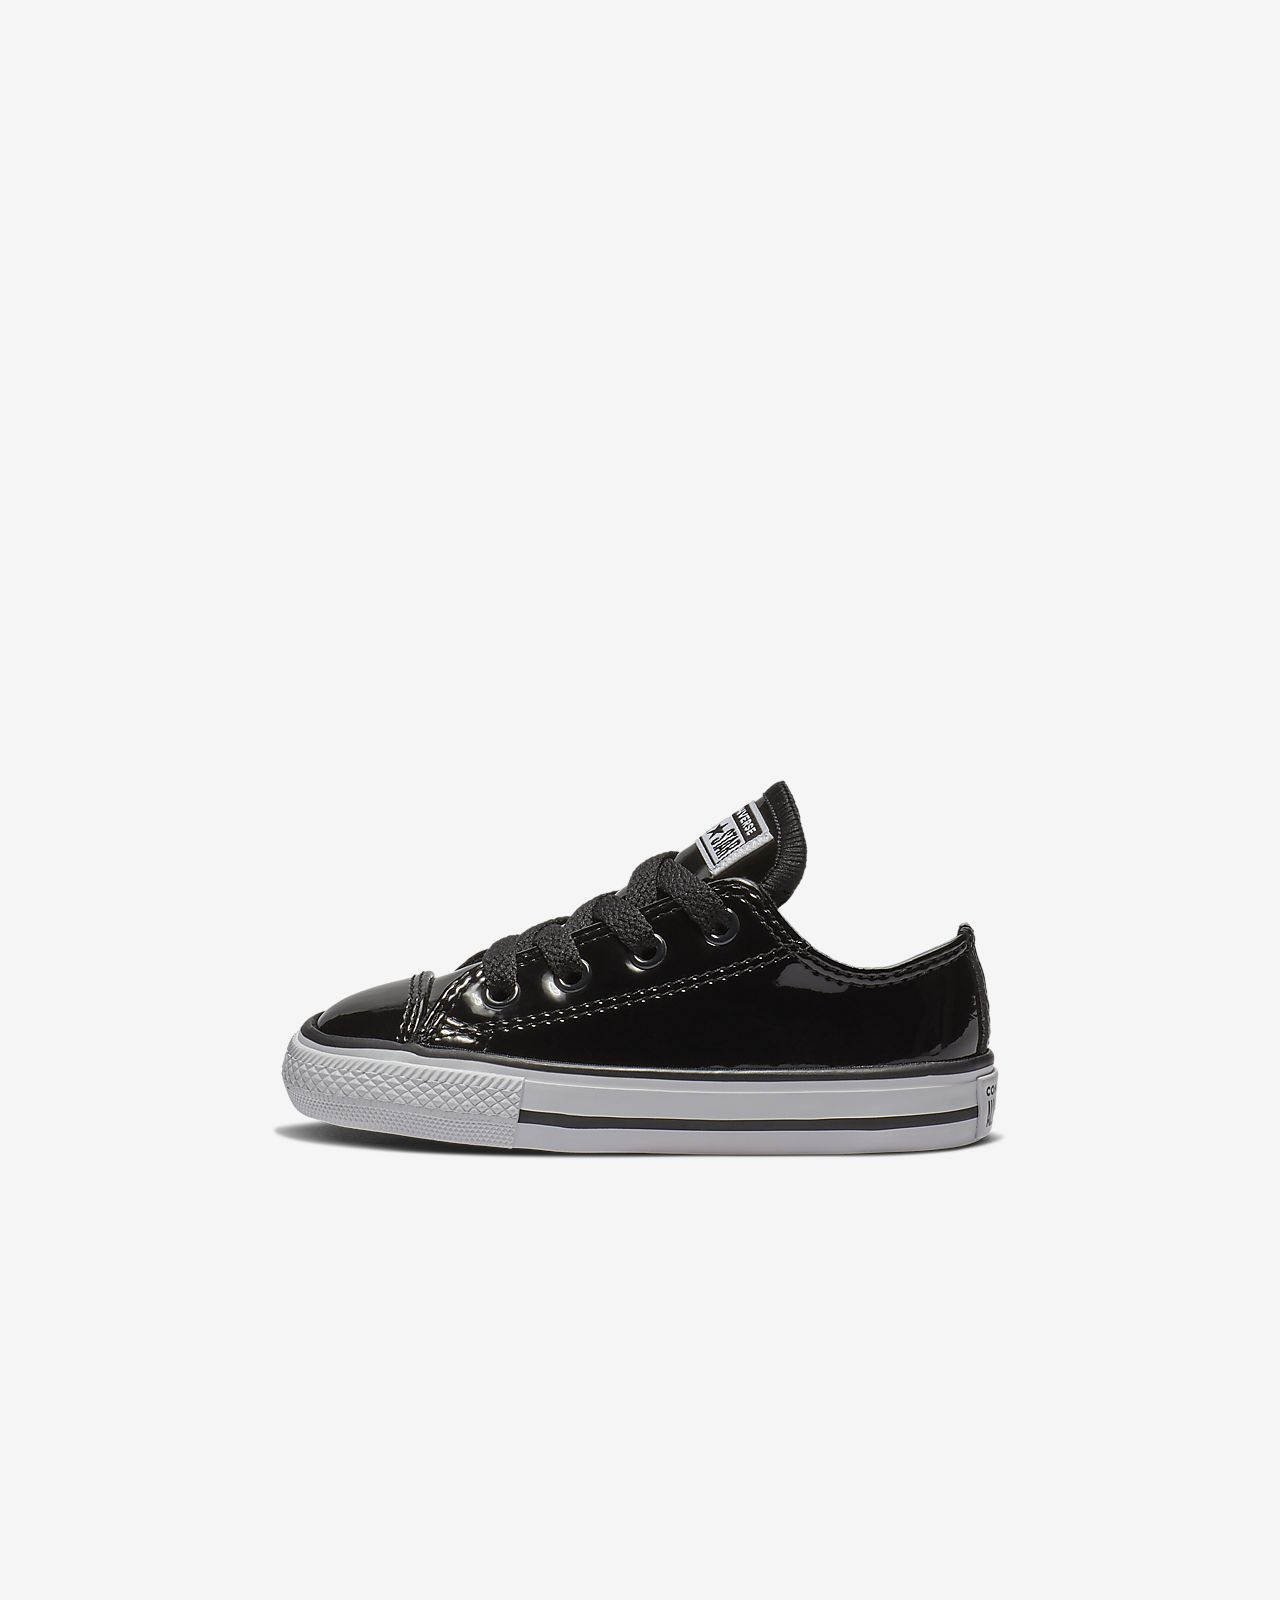 Converse Chuck Taylor All Star Patent '90s Low Top Little Kids' Shoe